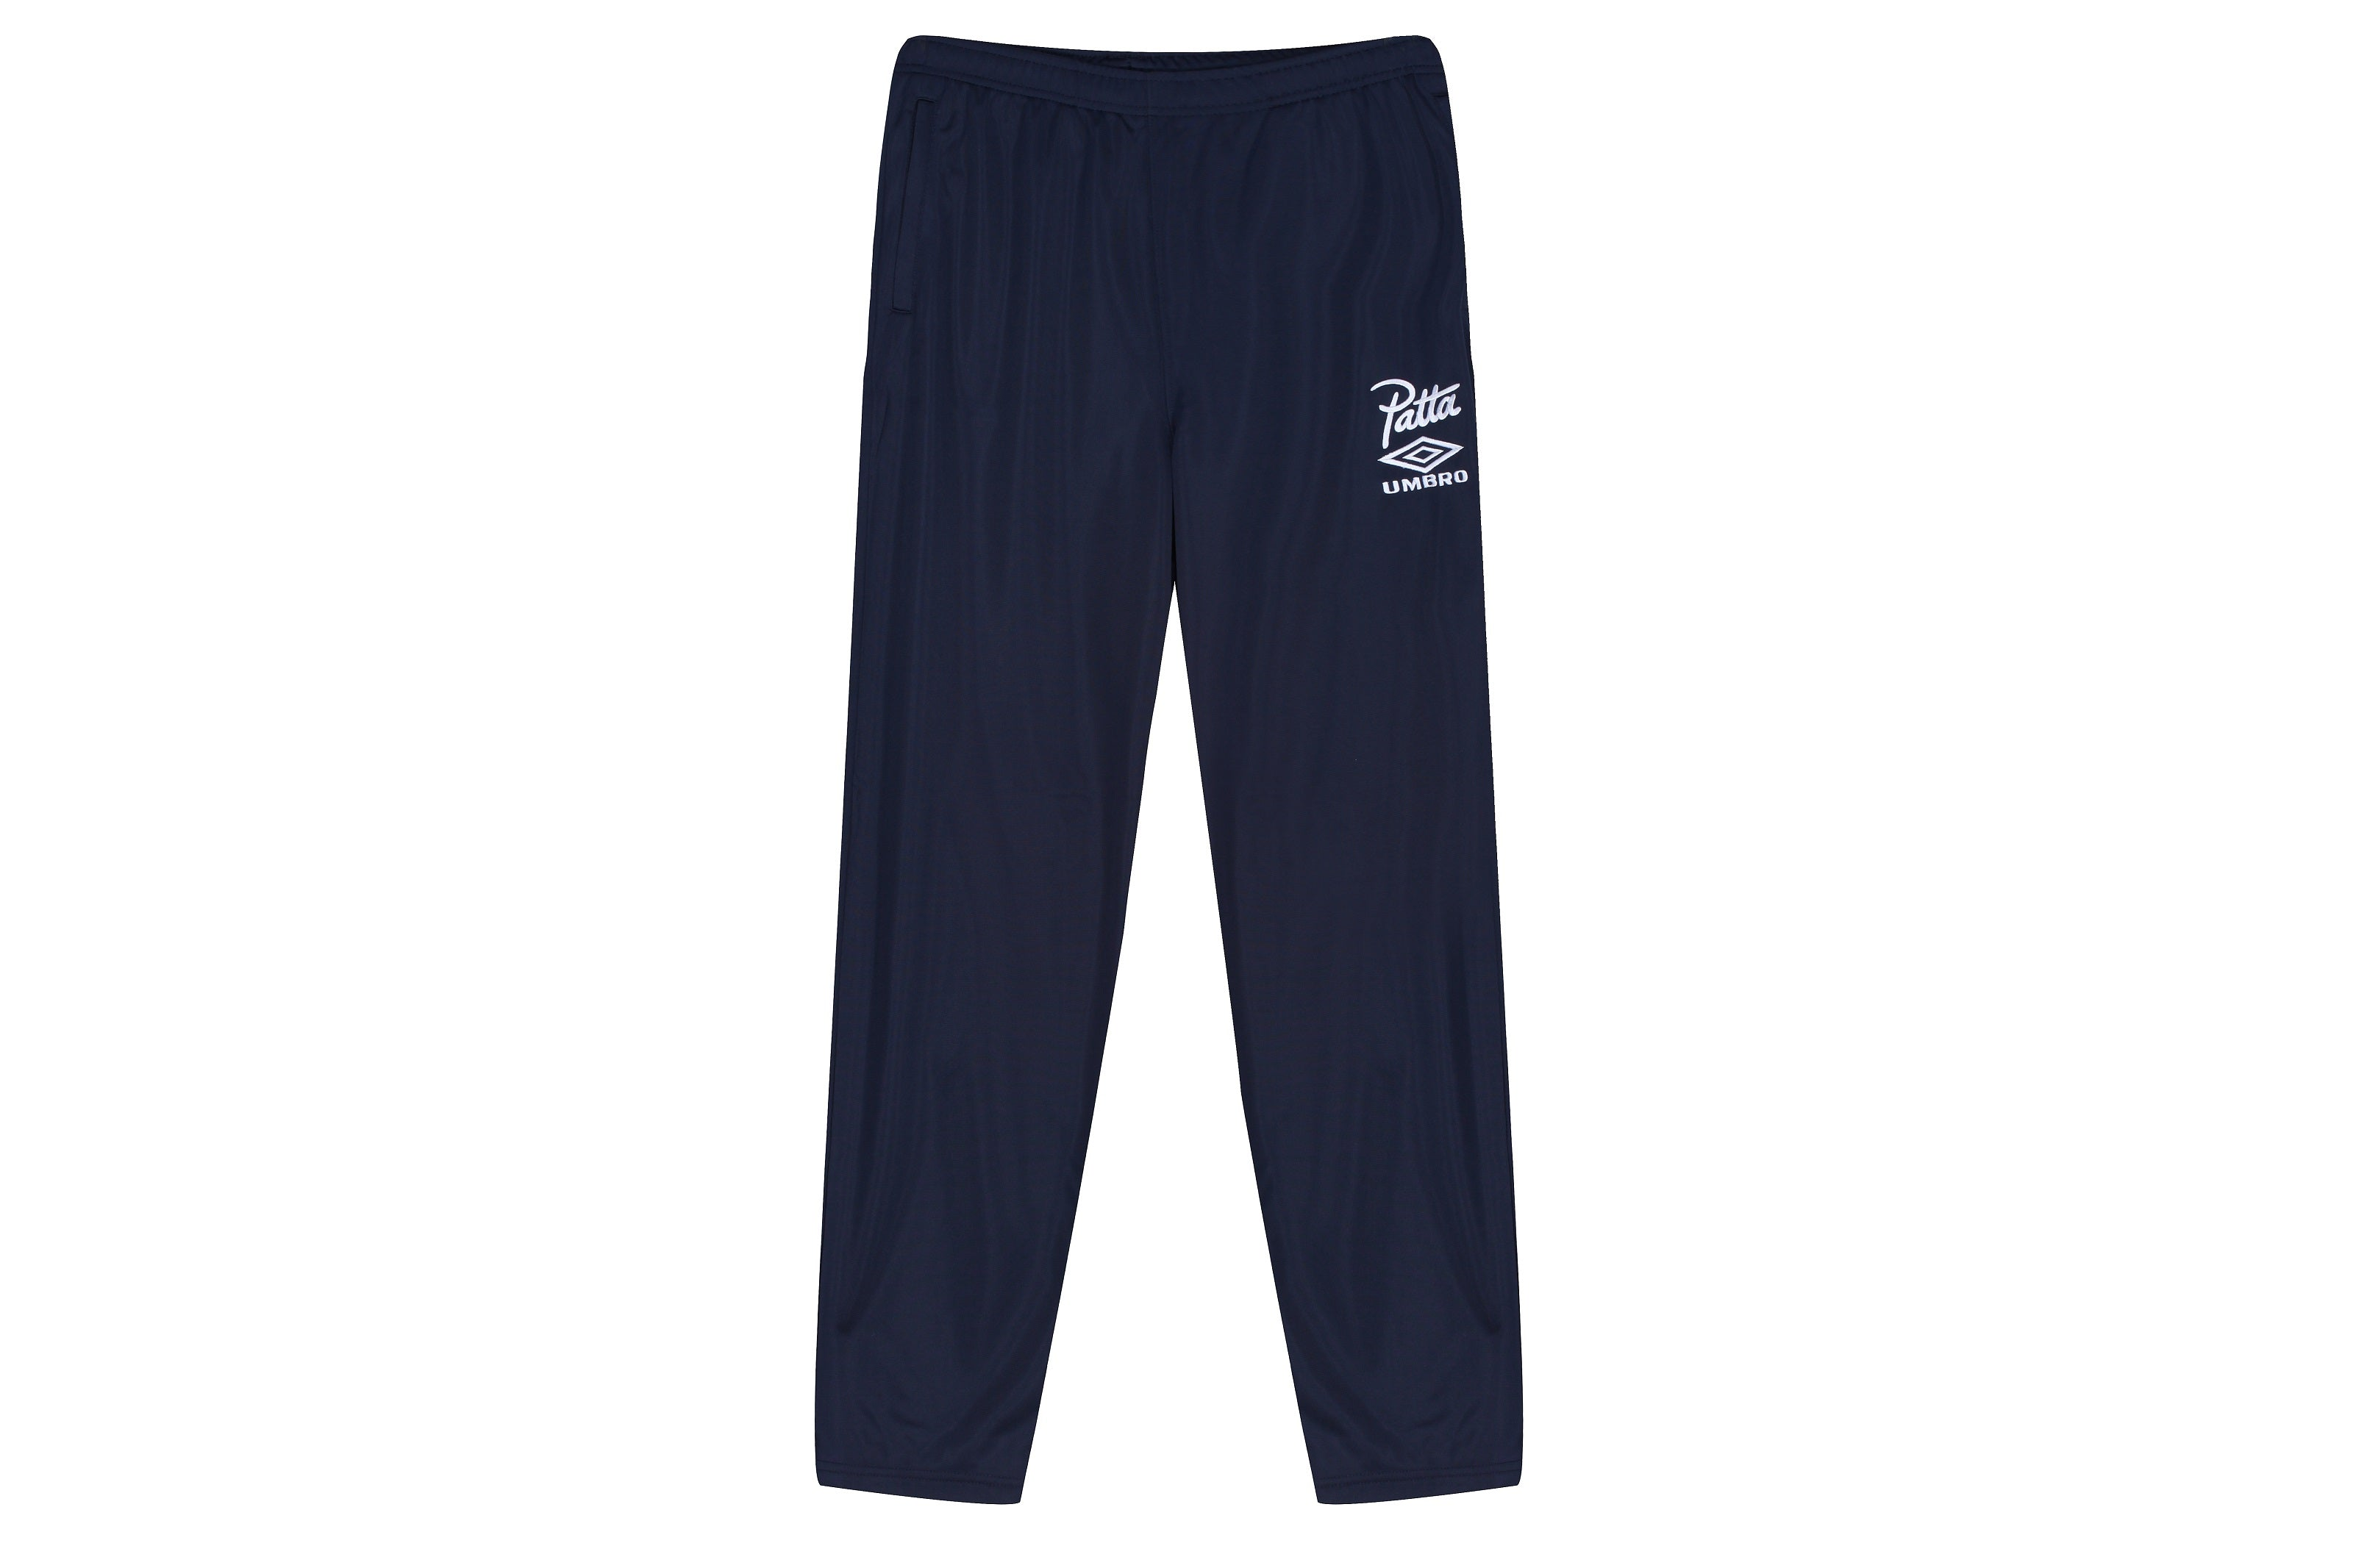 Patta Tricot Jogging Pants x Umbro